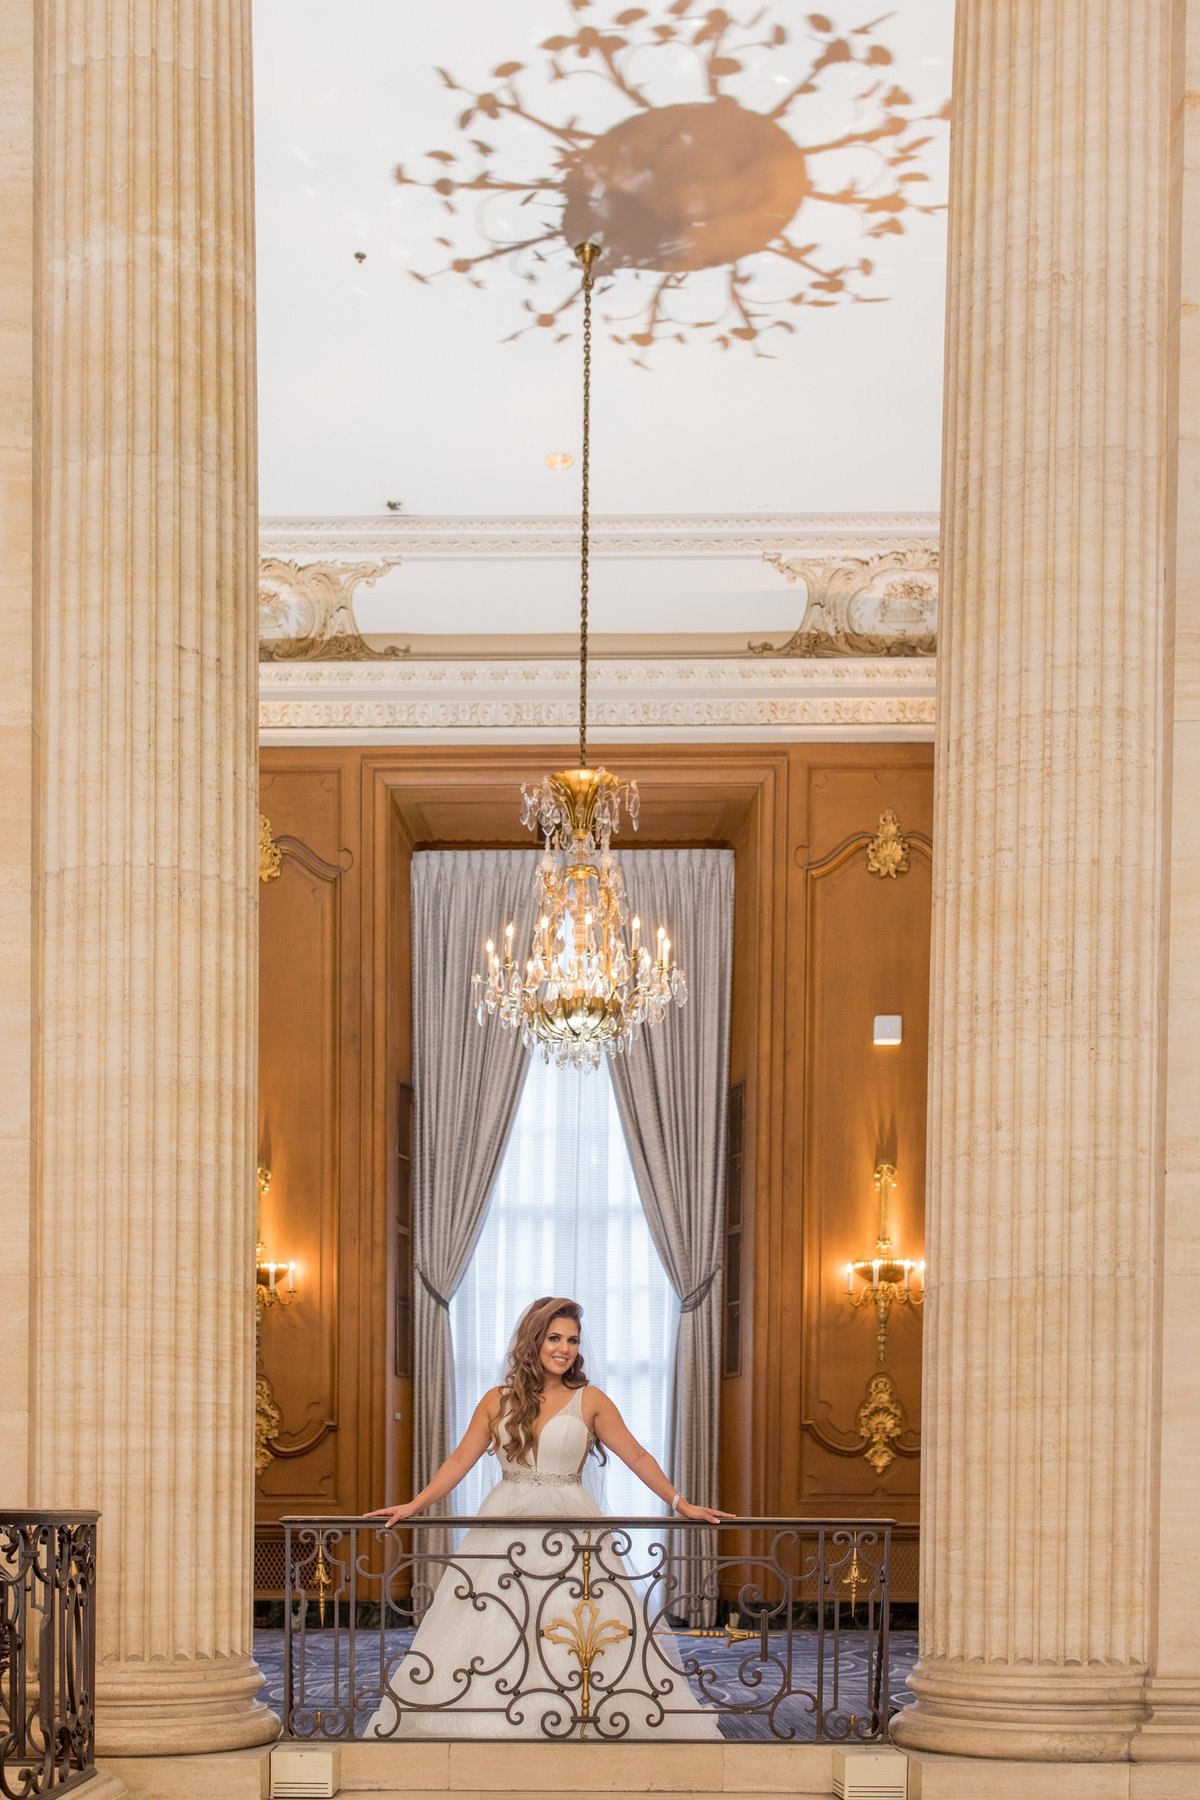 Le Cape Weddings - Laila and Anthony - Chicago Wedding - Bride Portraits -15.jpg